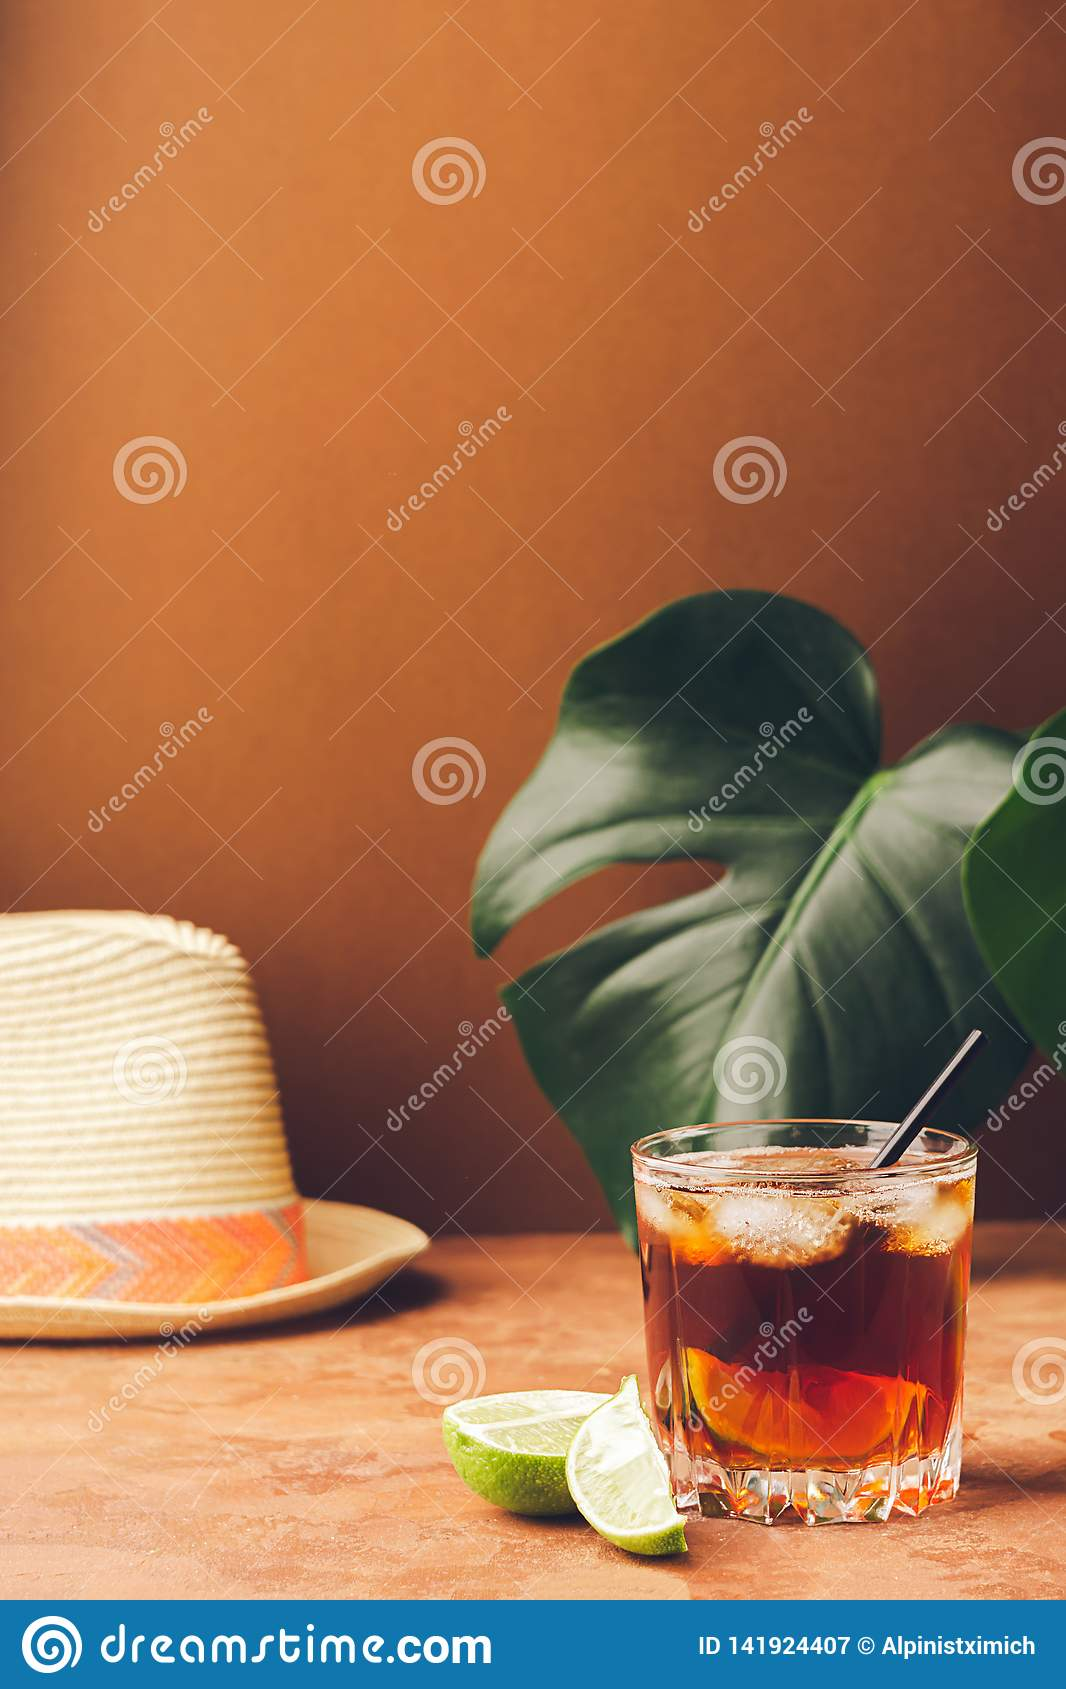 A drink of rum or cola ice cubes and juicy lime in glass goblets against a background of tropical green leaves.